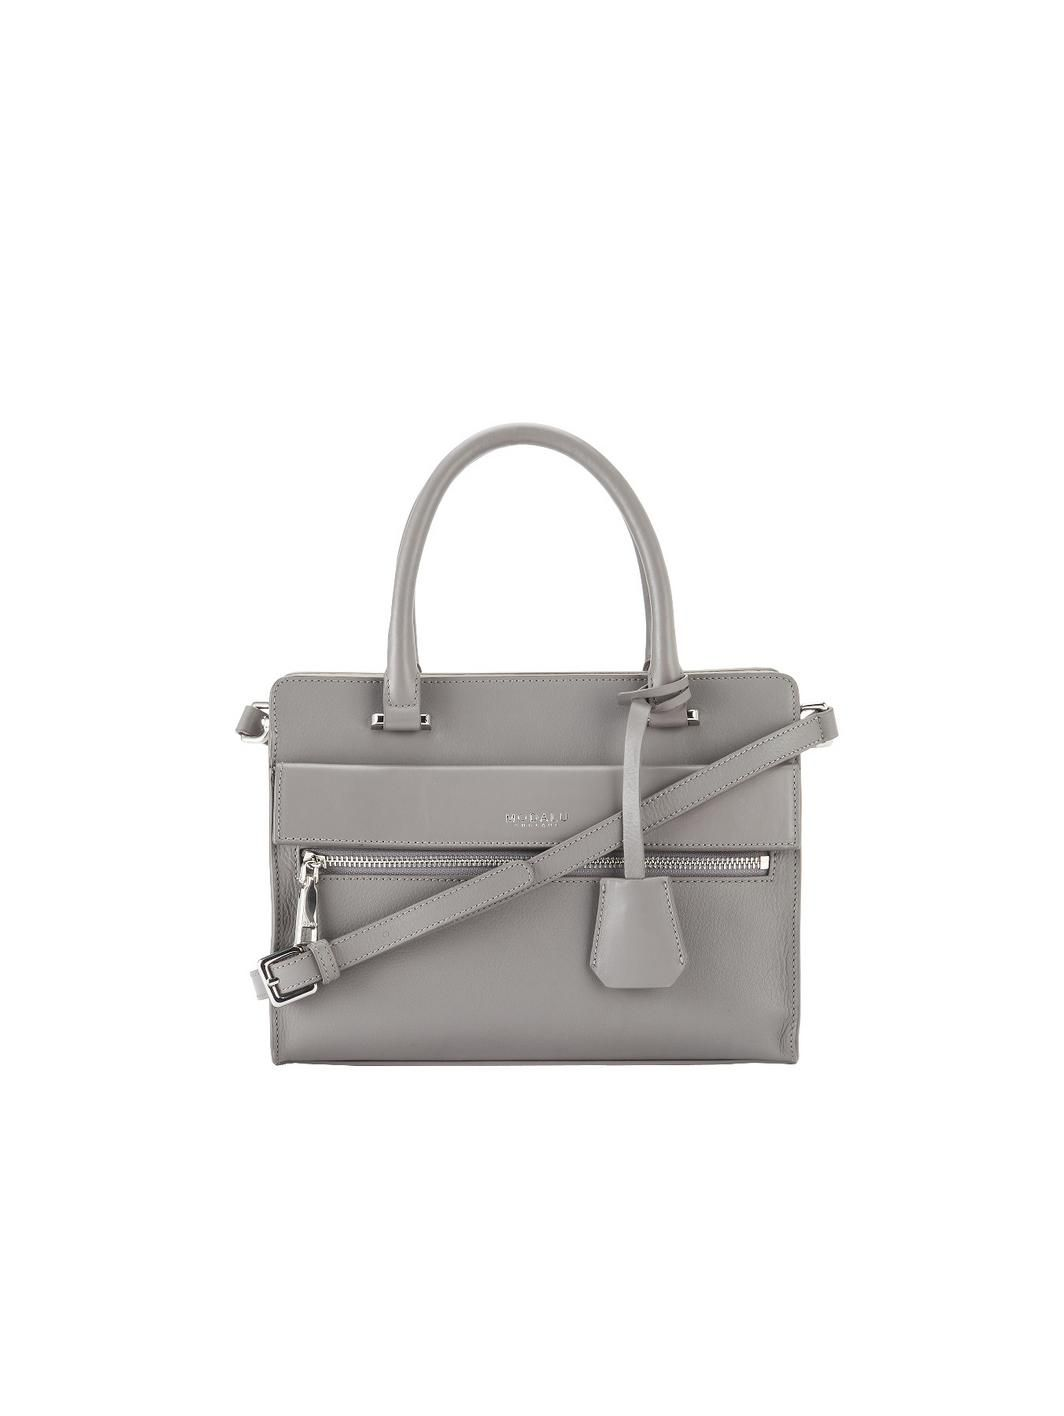 Silver leather tote bag uk - Erin Mini Tote Crossbody Bag Http Www Very Co